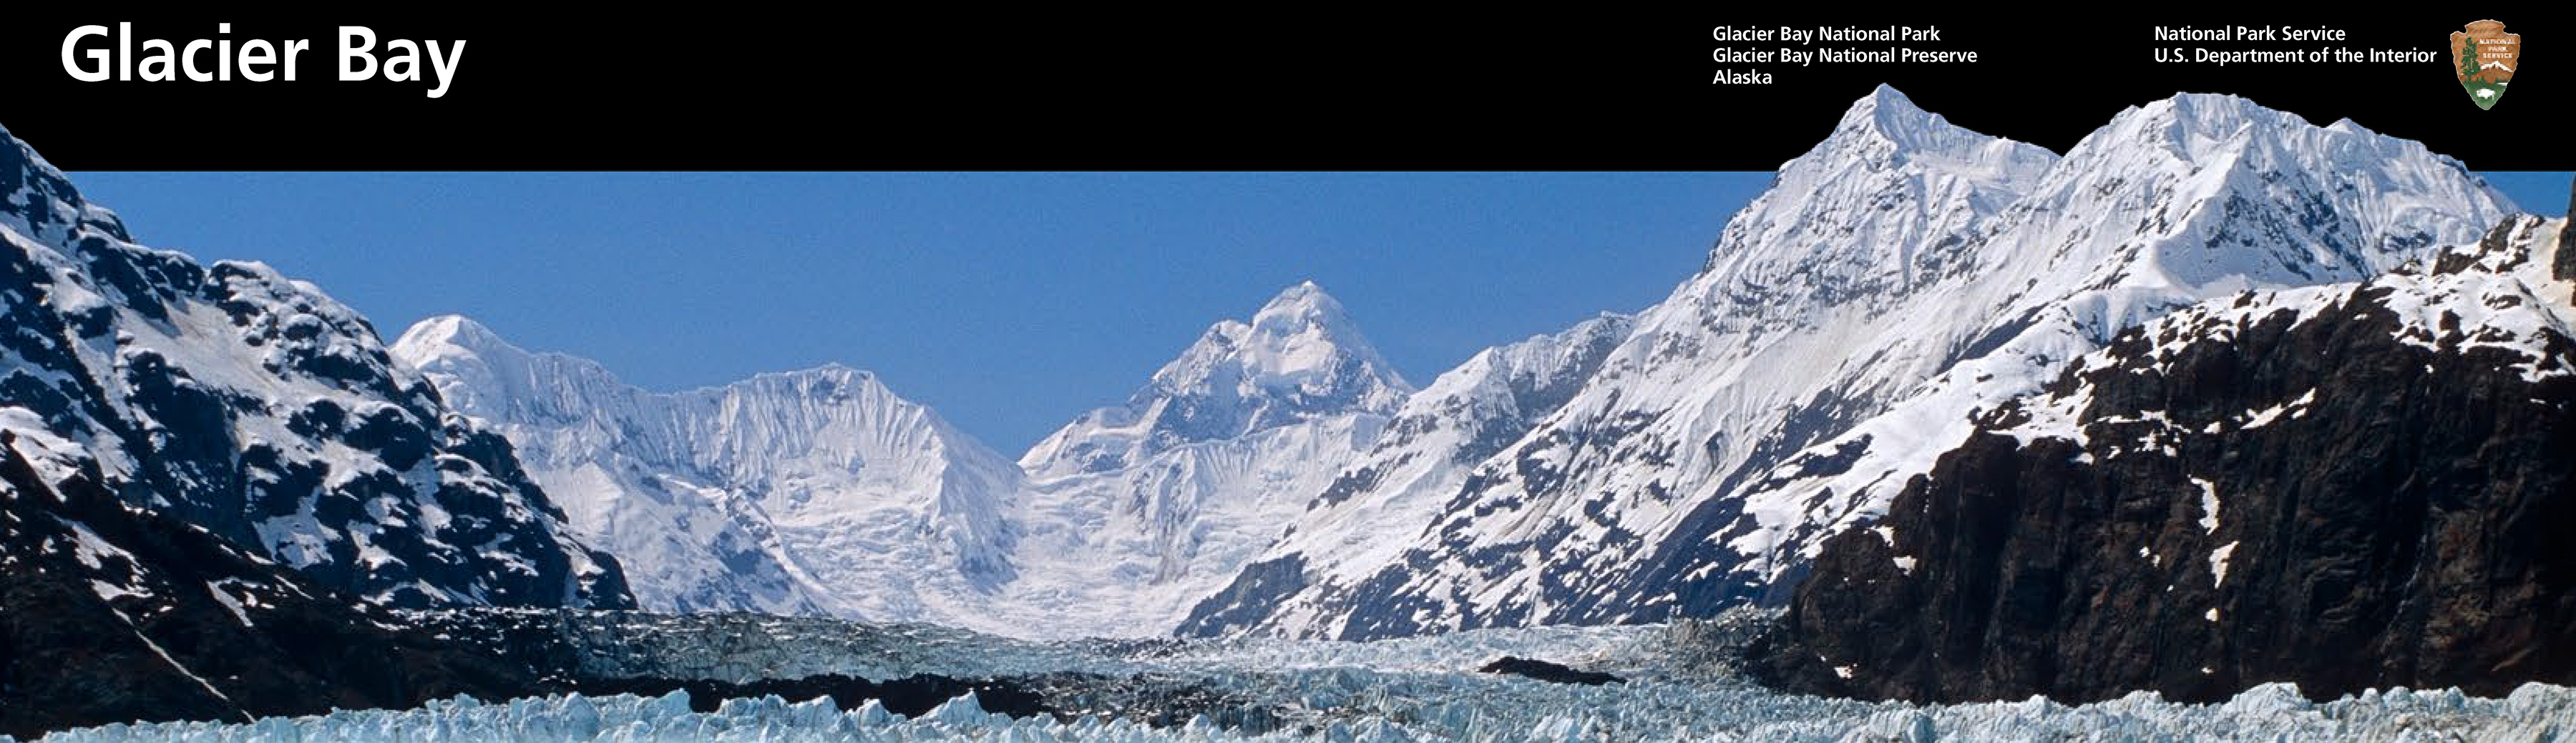 A Glacier Leads High Into Steep Rocky Snow-topped Mountains. Graphic Layout For Glacier Bay At Top - A glacier leads high into steep rocky snow-topped mountains. Graphic layout for Glacier bay at top